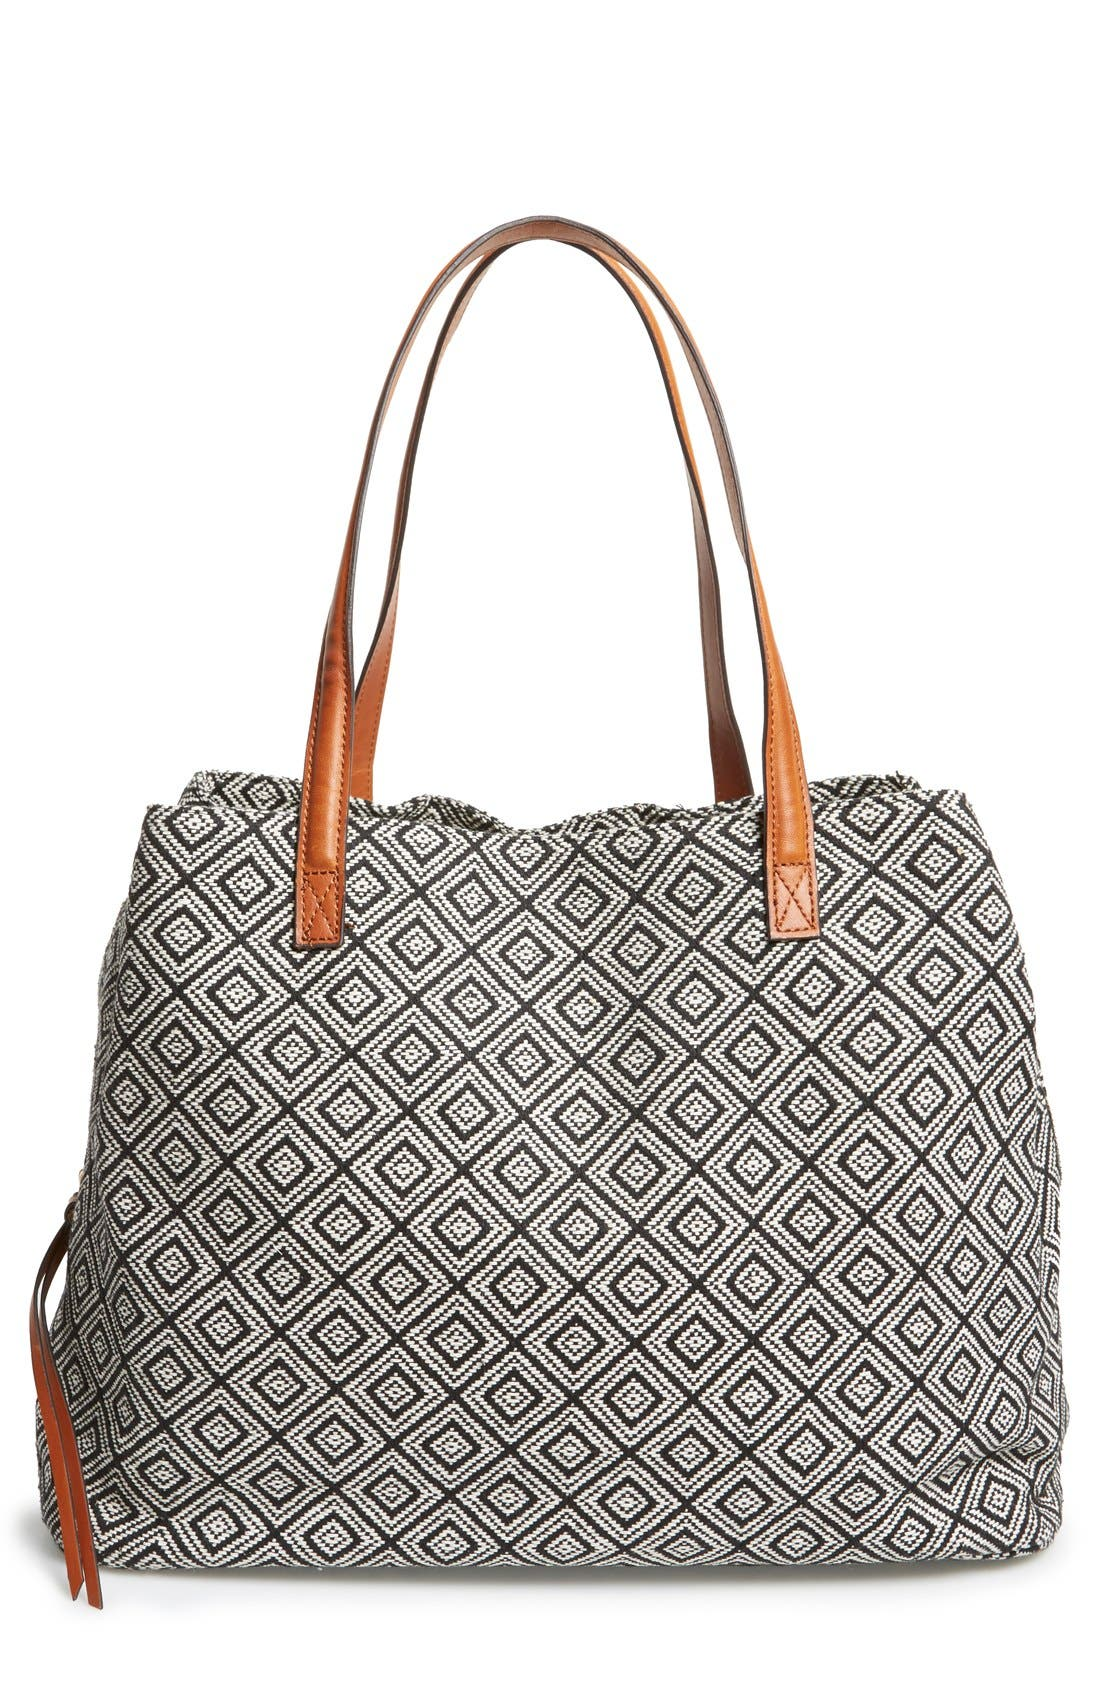 'Oversize Millie' Tote,                         Main,                         color, Black White Geo